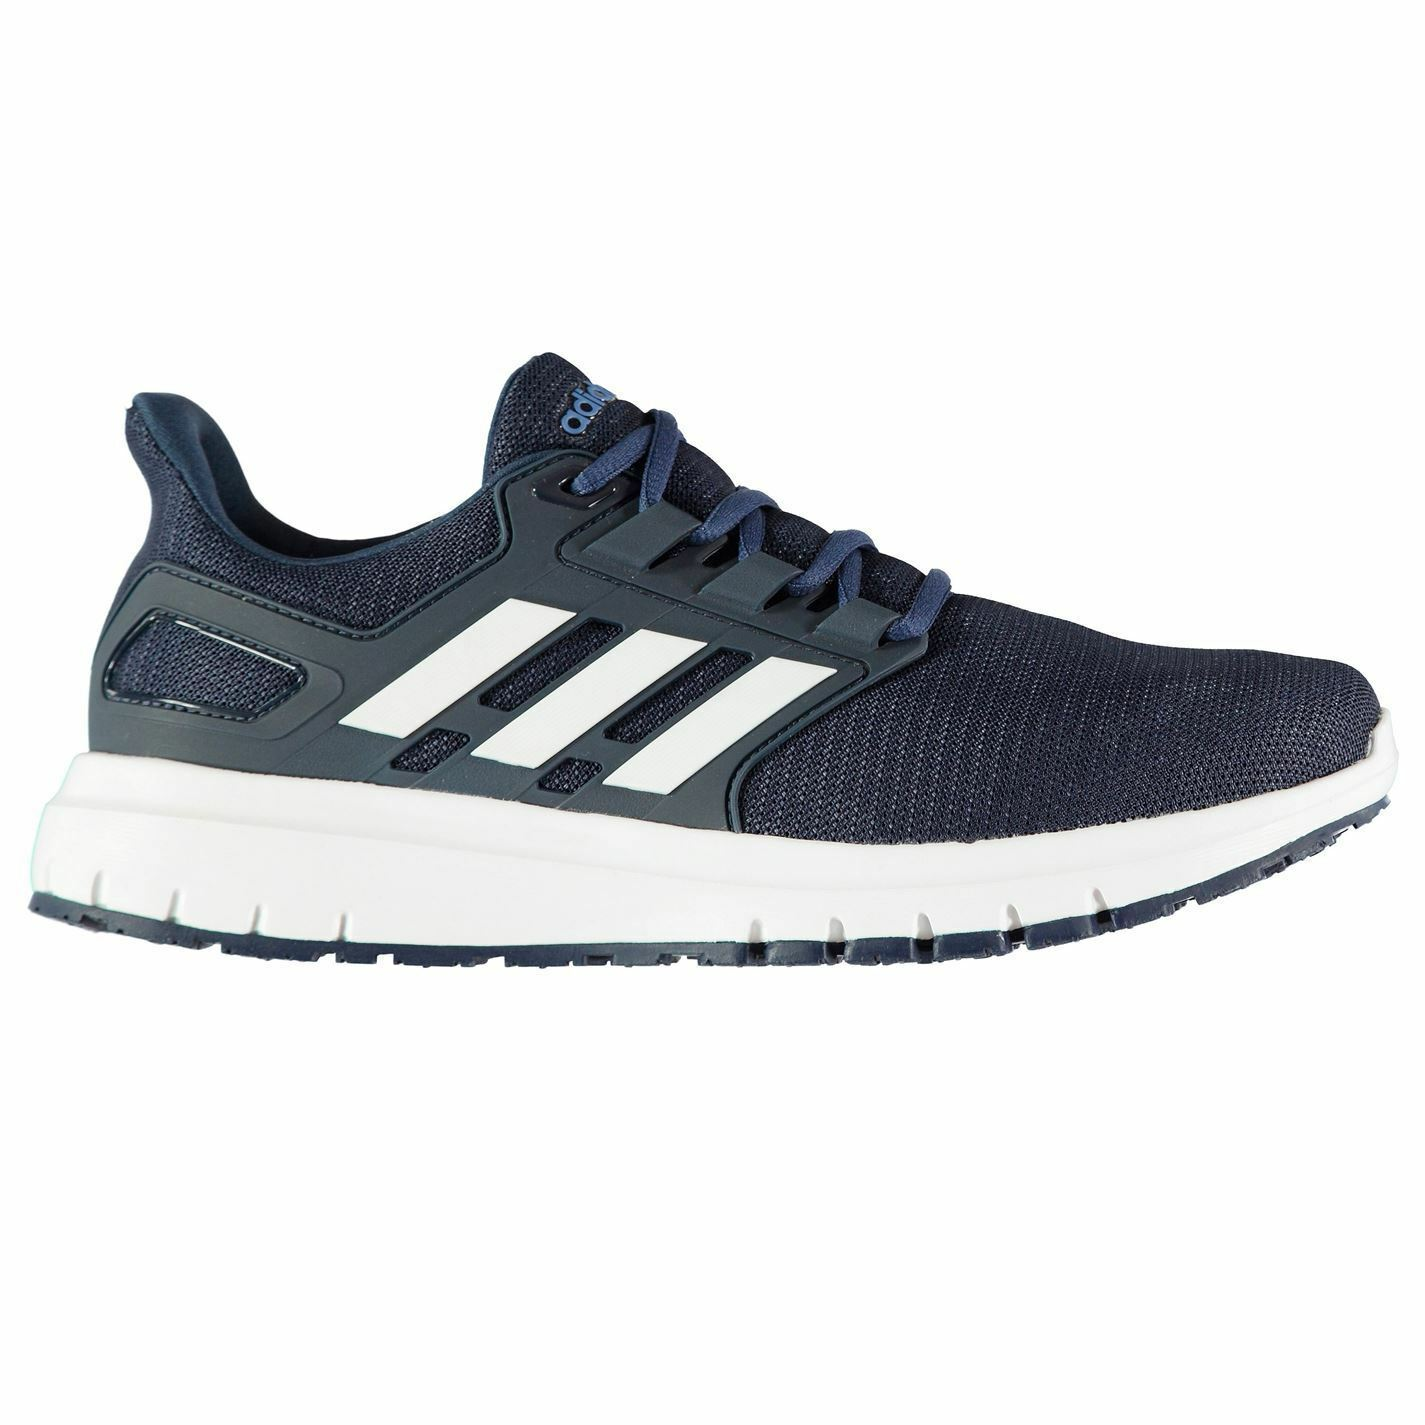 Adidas Energy Cloud 2 Running shoes Mens Navy White Fitness Trainers Sneakers